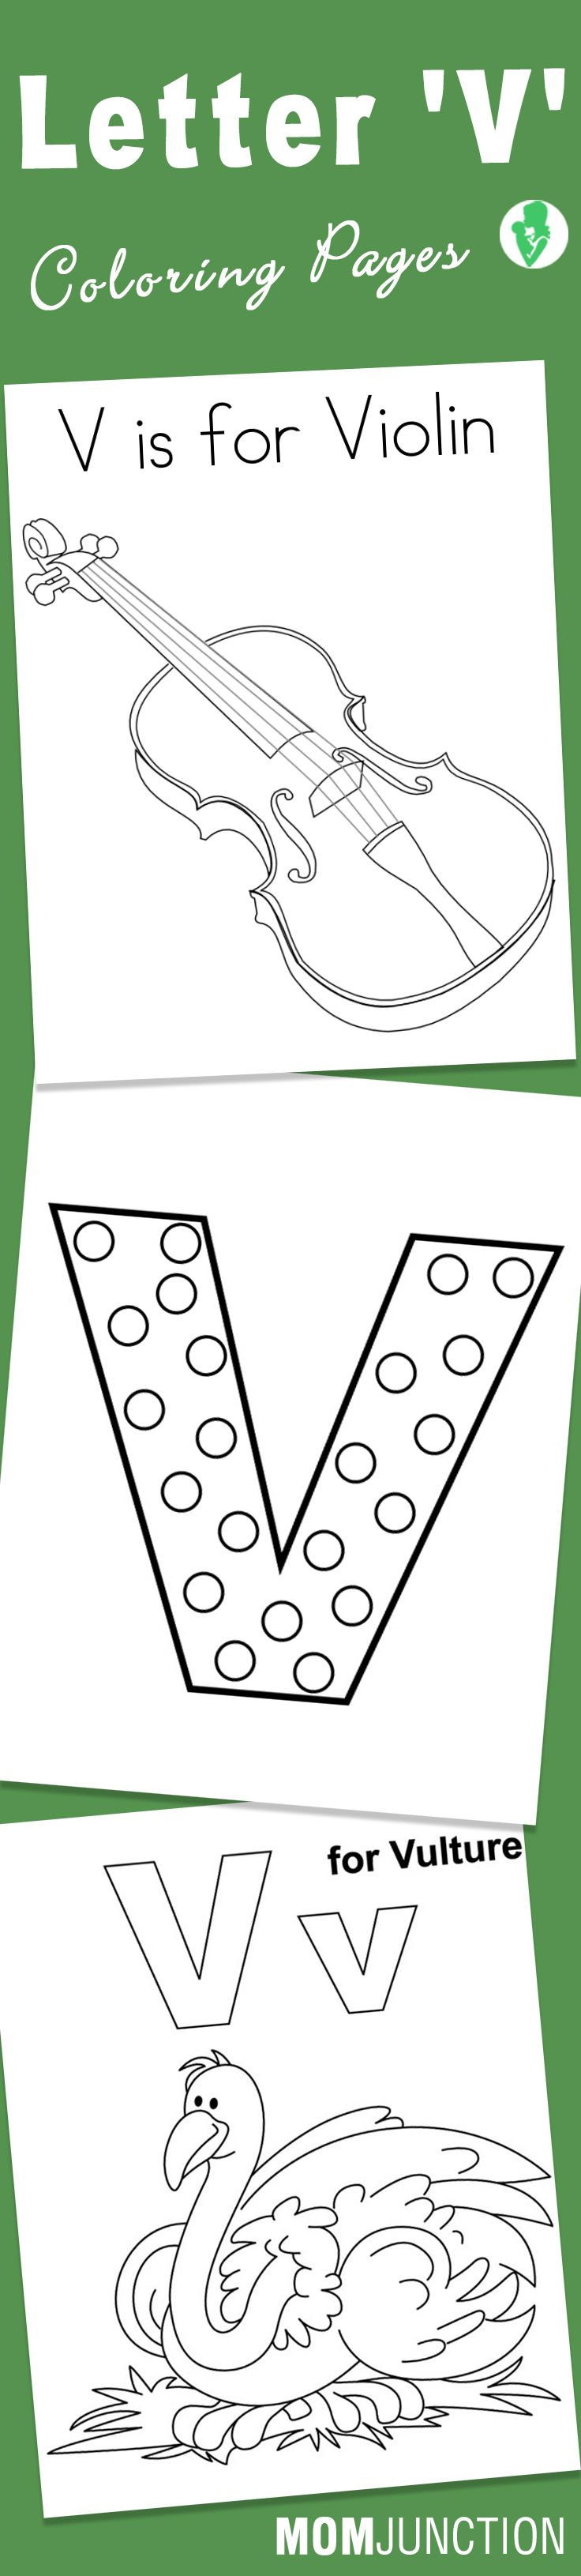 Counting coloring pages for toddlers - Top 10 Free Printable Letter V Coloring Pages Online